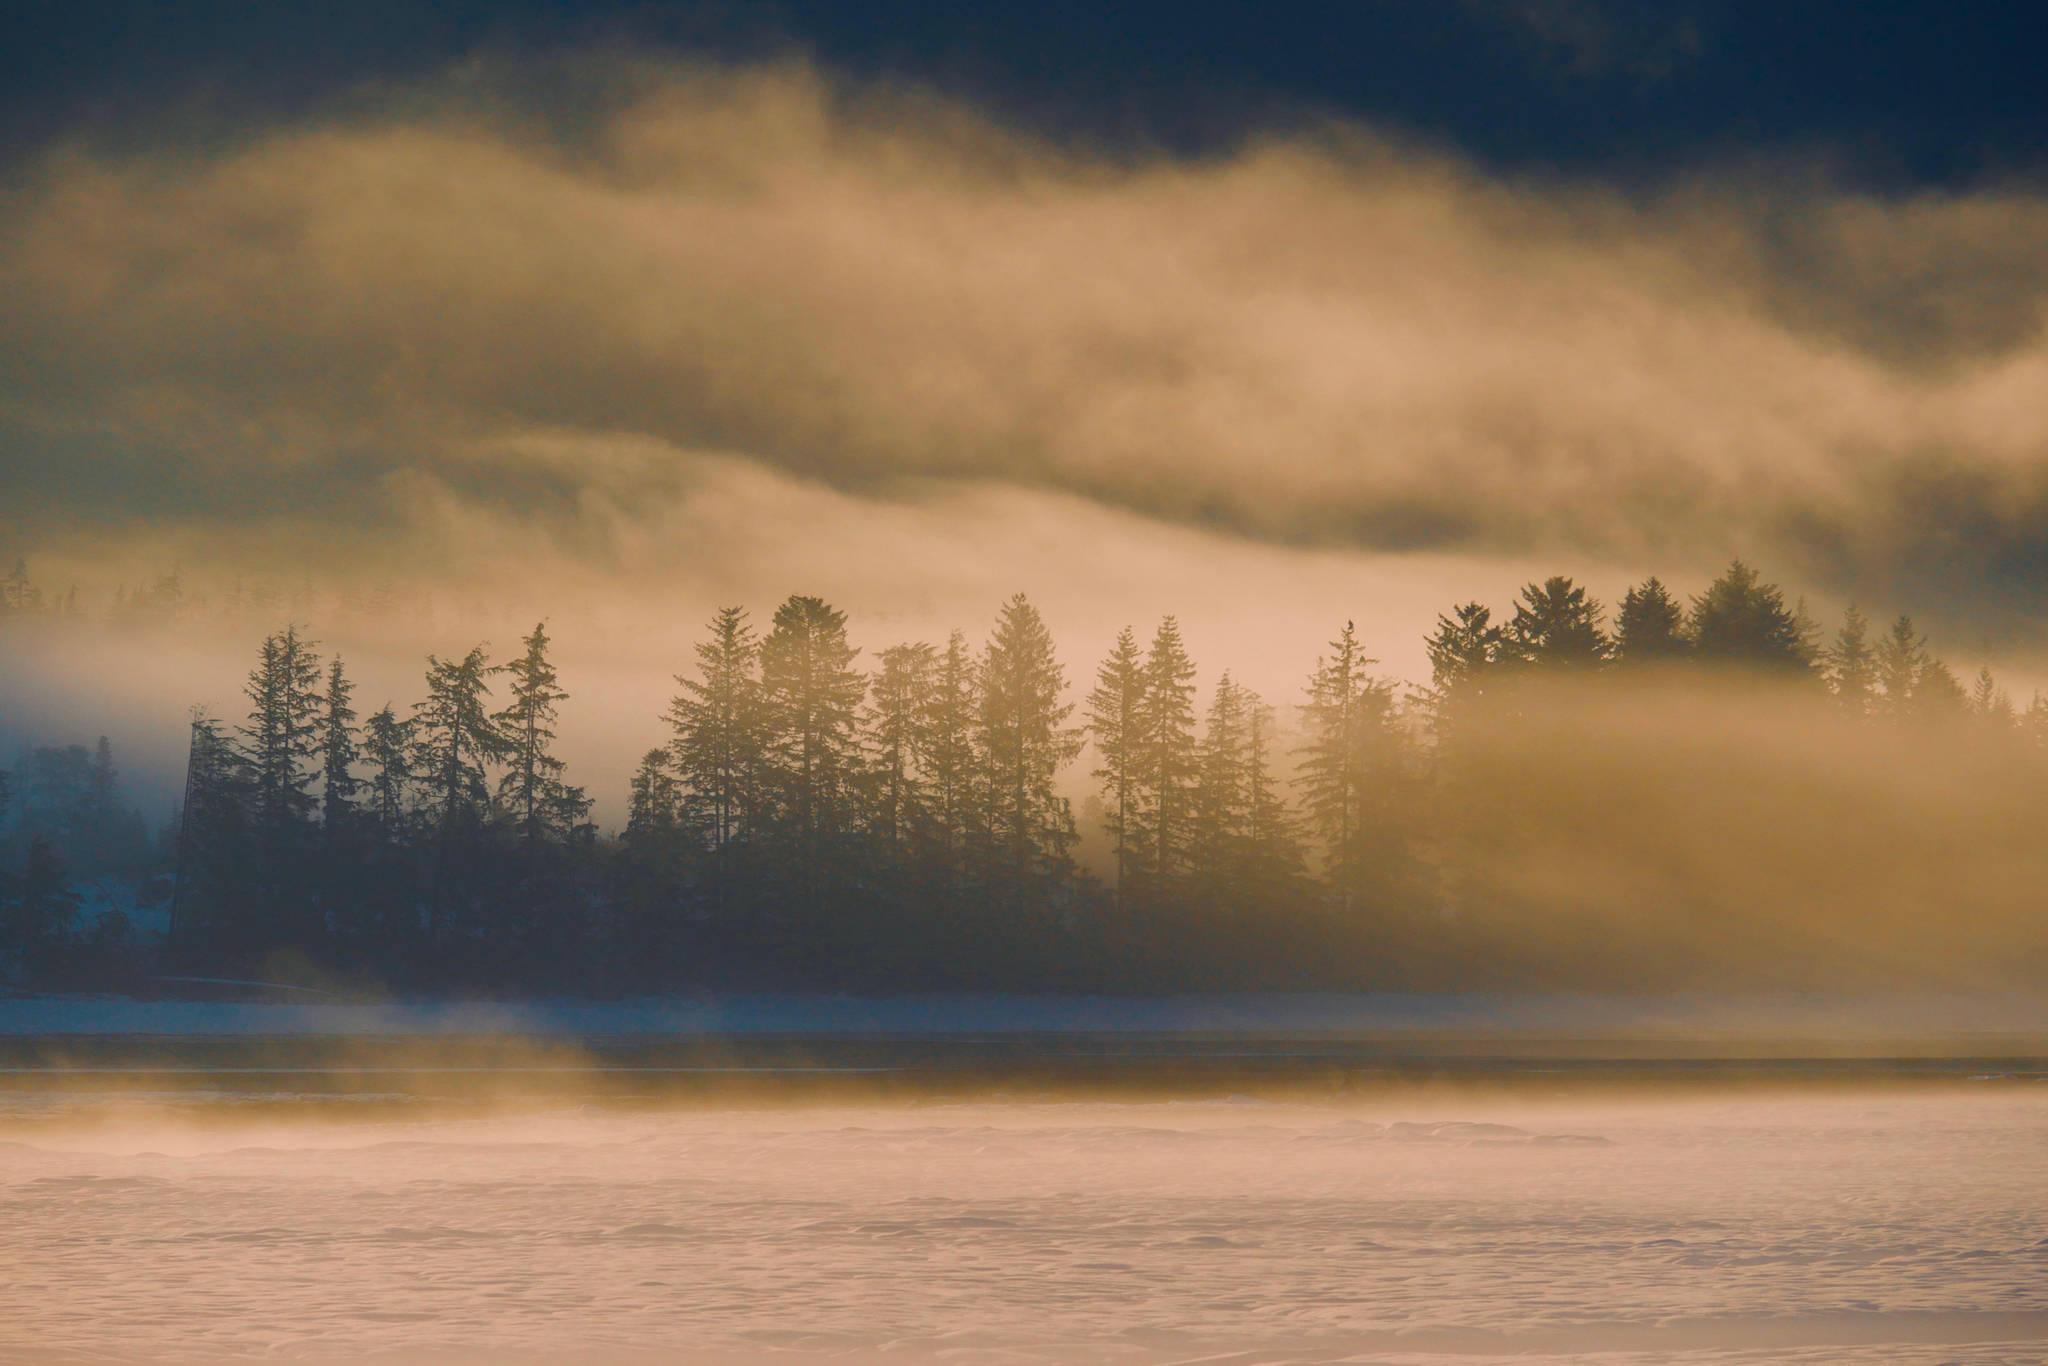 Fog drapes across the Mendenhall Wetlands. (Courtesy Photo | Janine Reep)